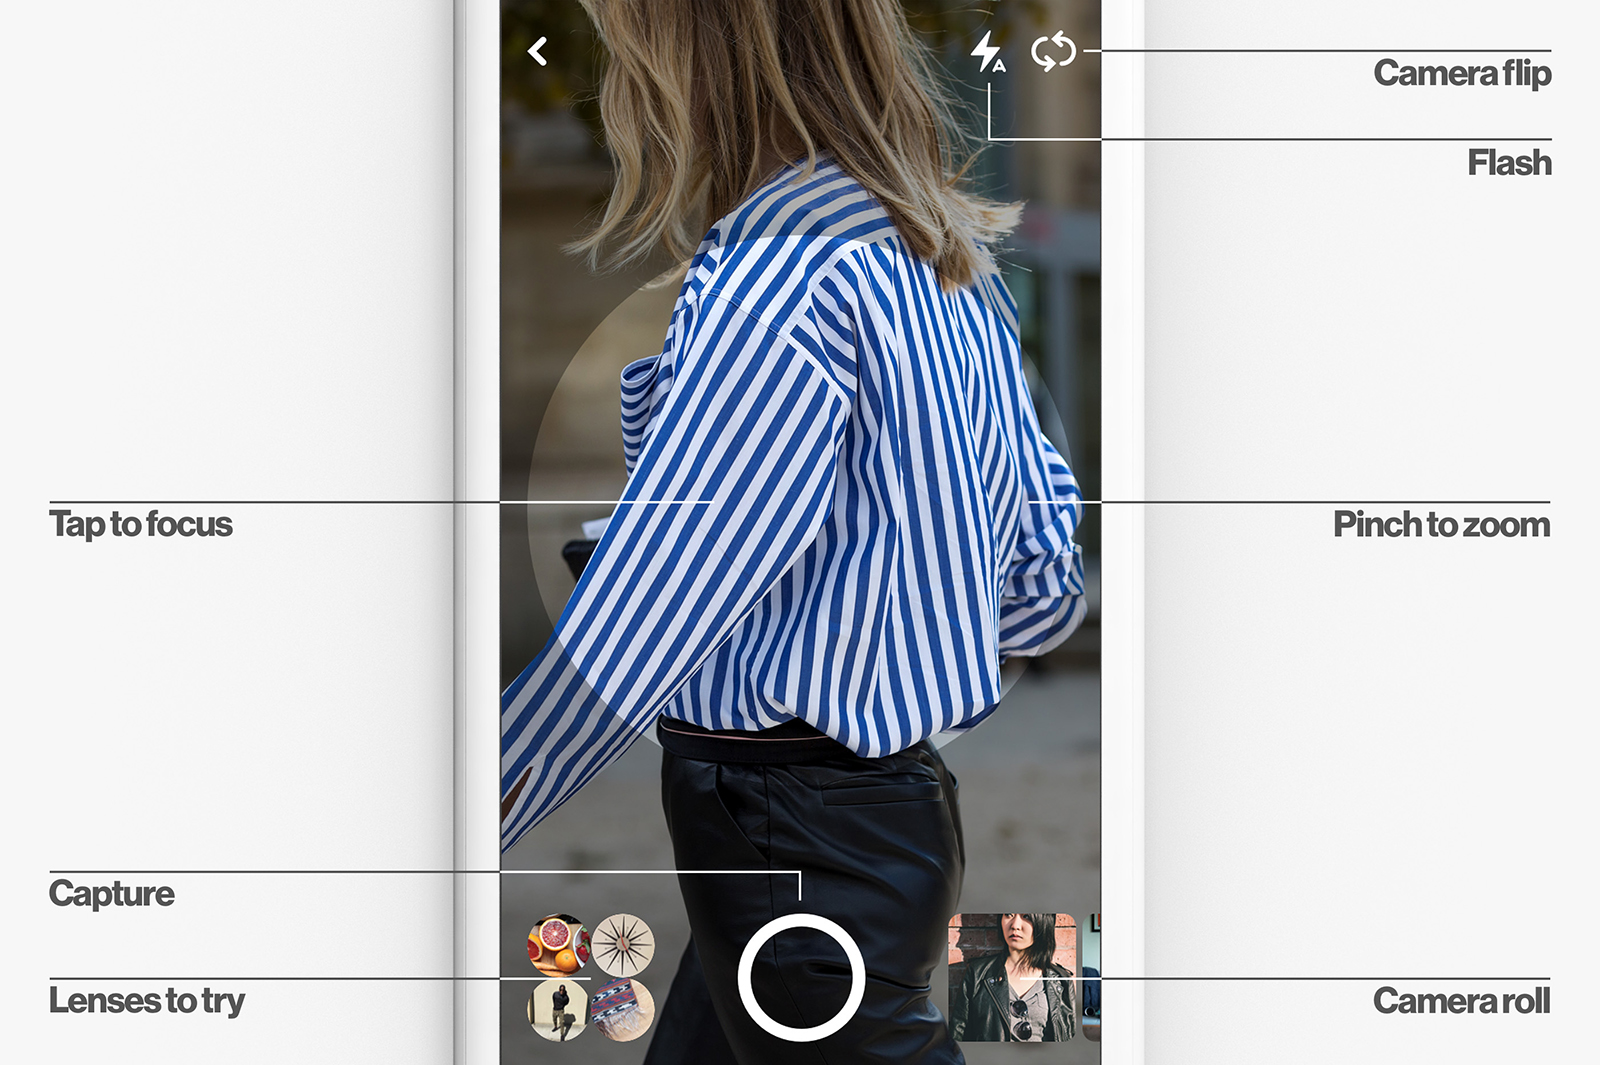 Pinterest: What Not To Wear: Pinterest Lens Suggests Outfits Based On